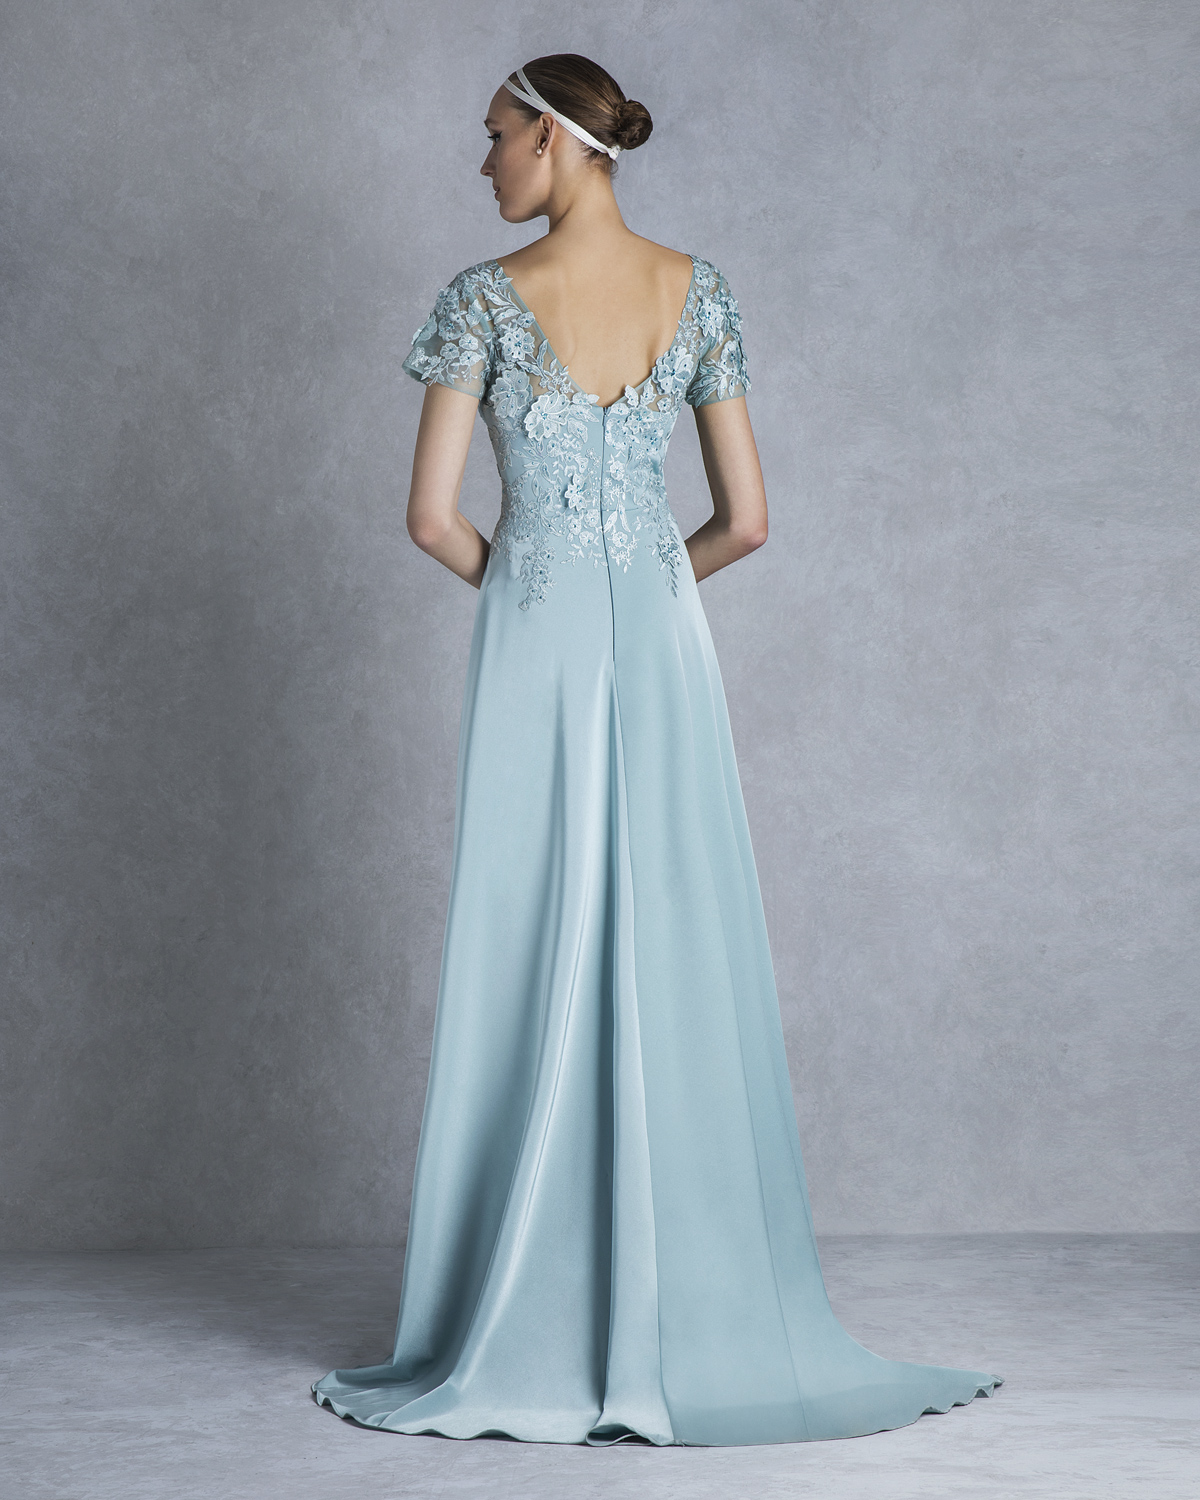 Classic Dresses / Long evening dress with lace for the mother of the bride